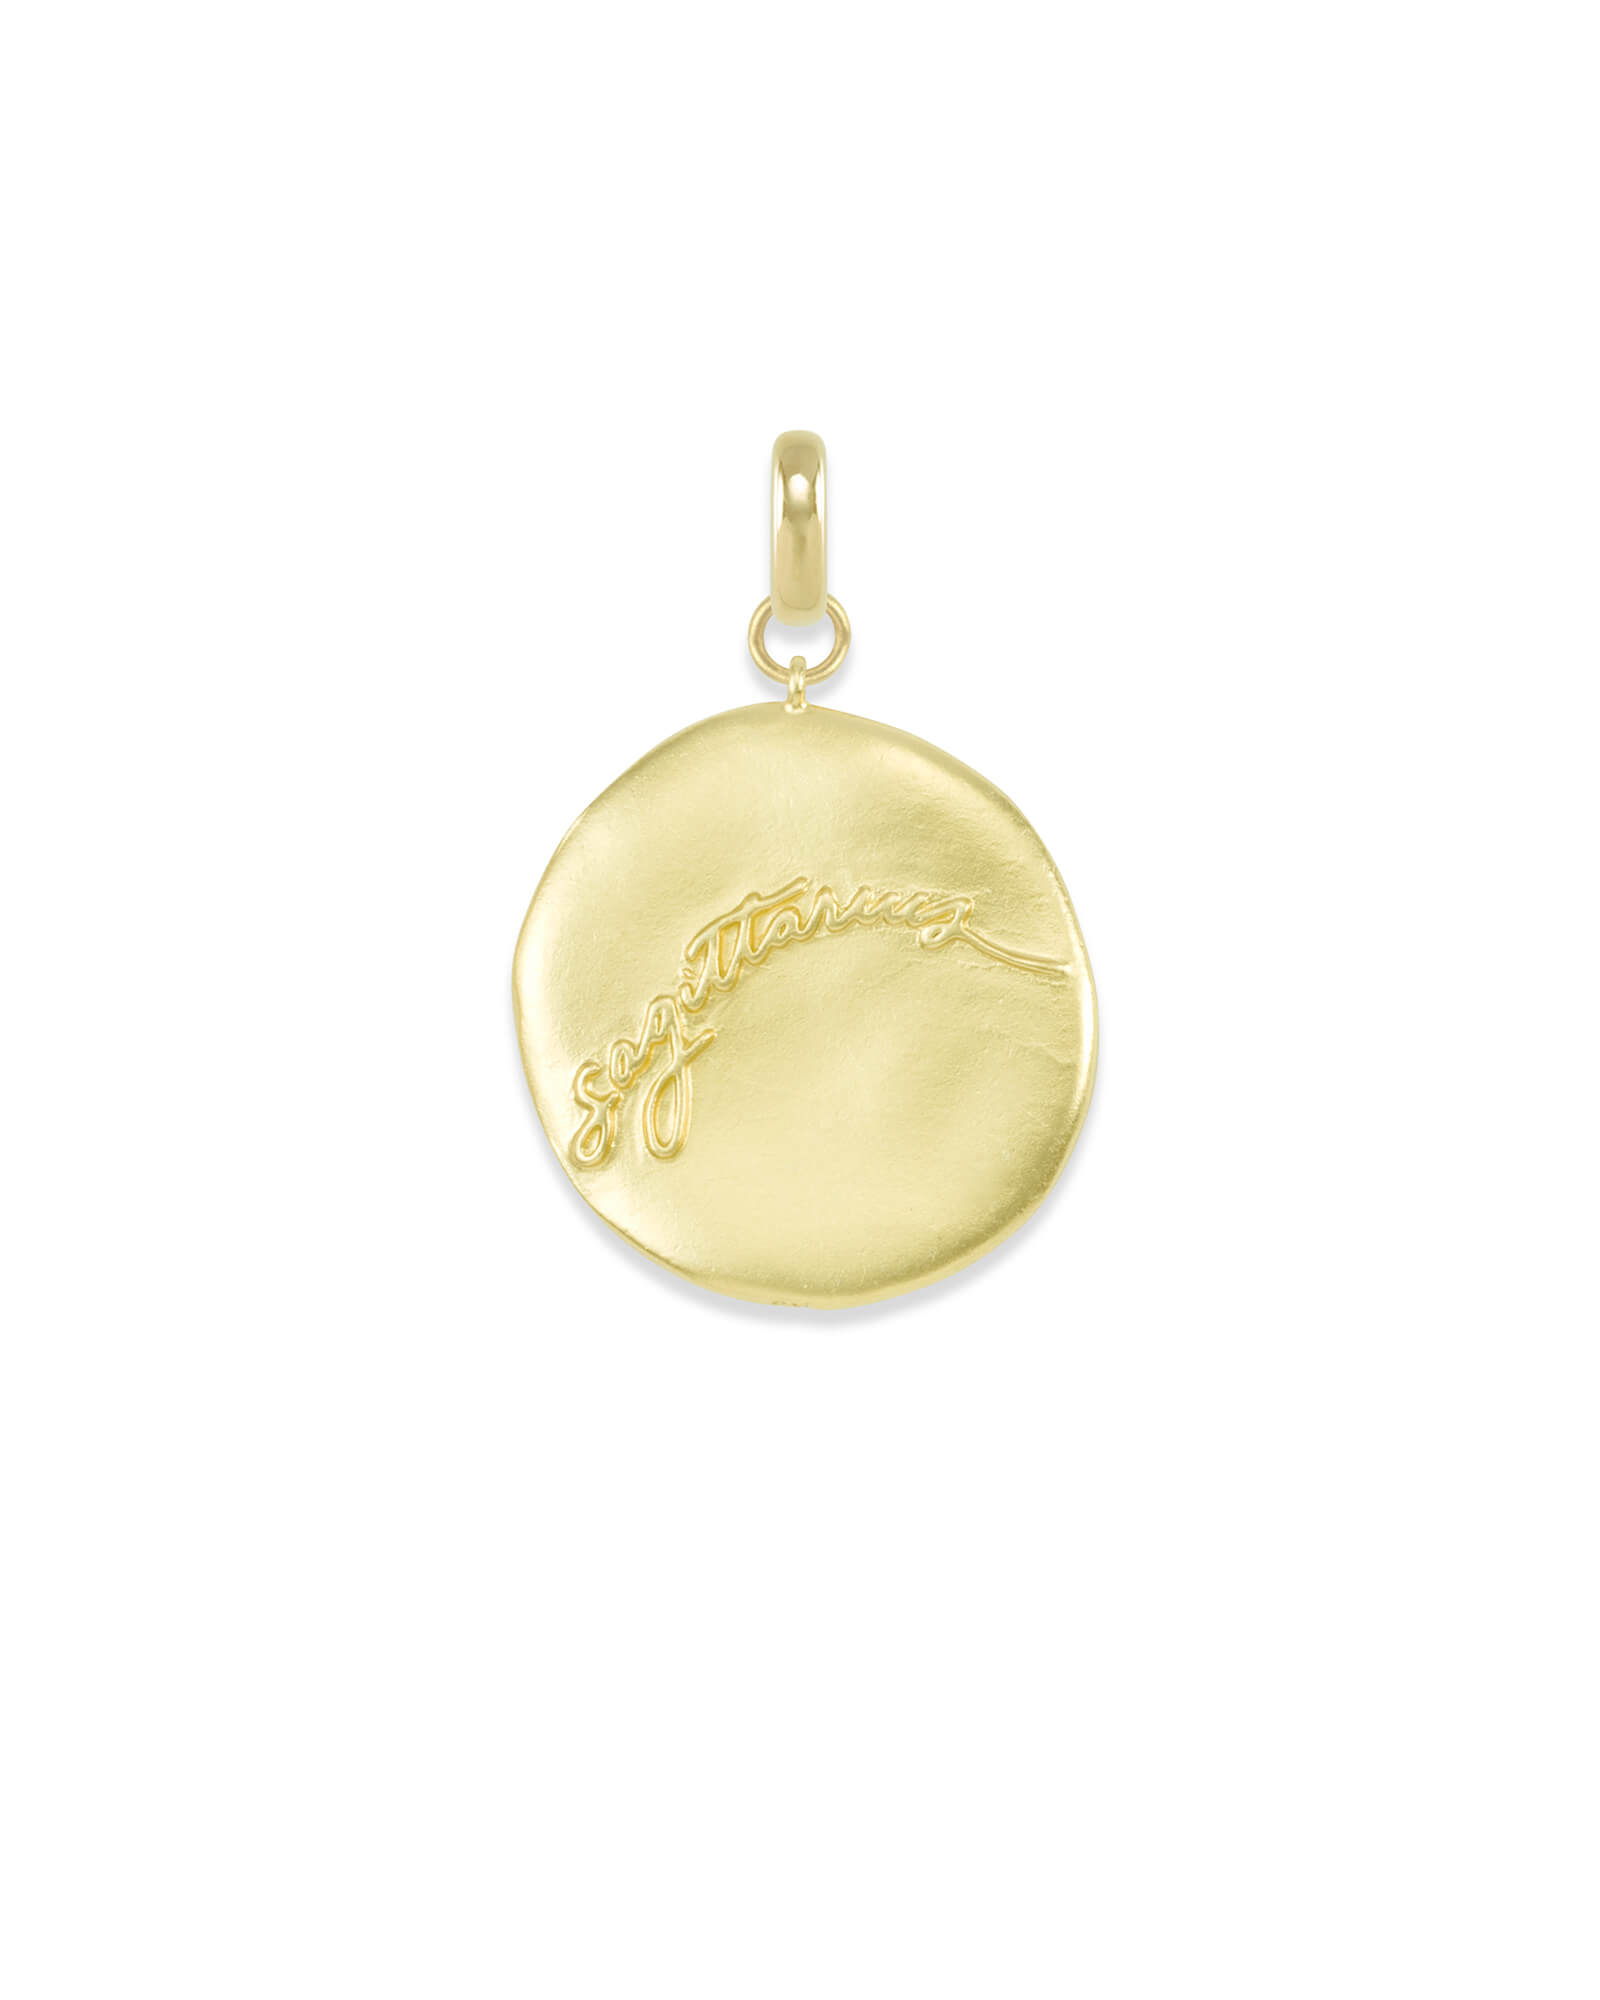 Sagittarius Coin Charm in Gold